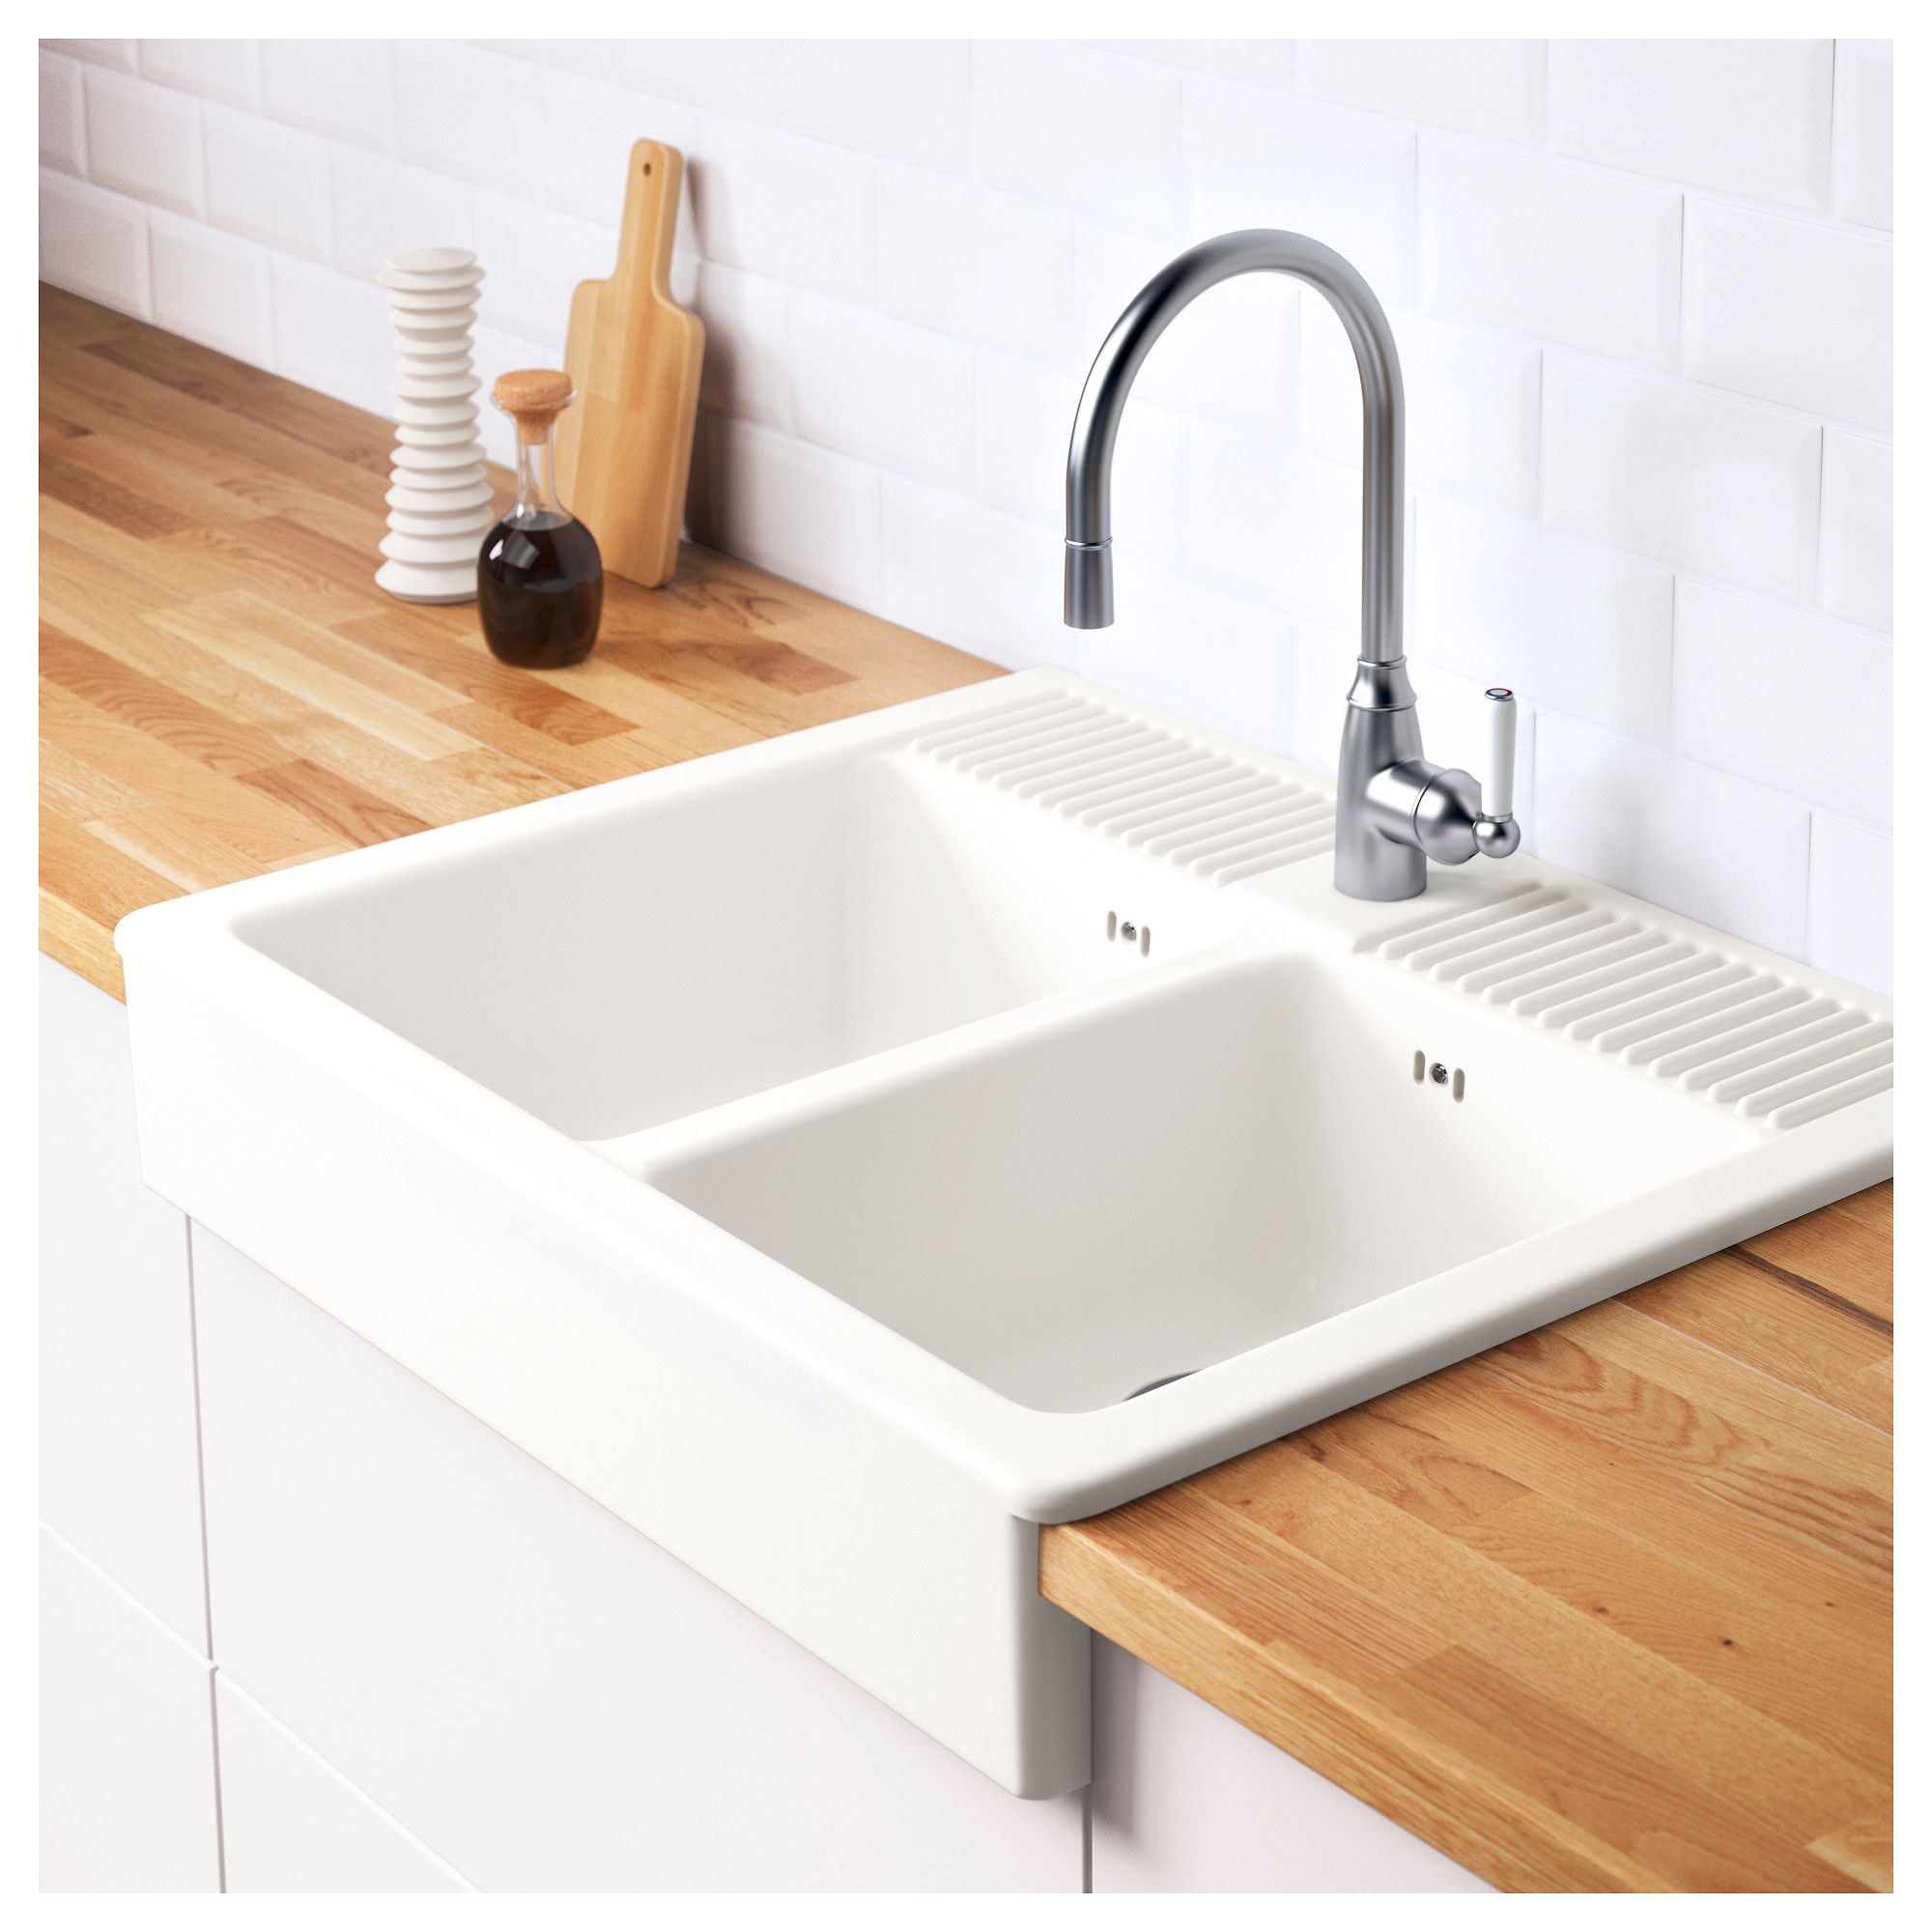 Superbe DOMSJÖ Onset Sink, 2 Bowls White 83x66 Cm   IKEA